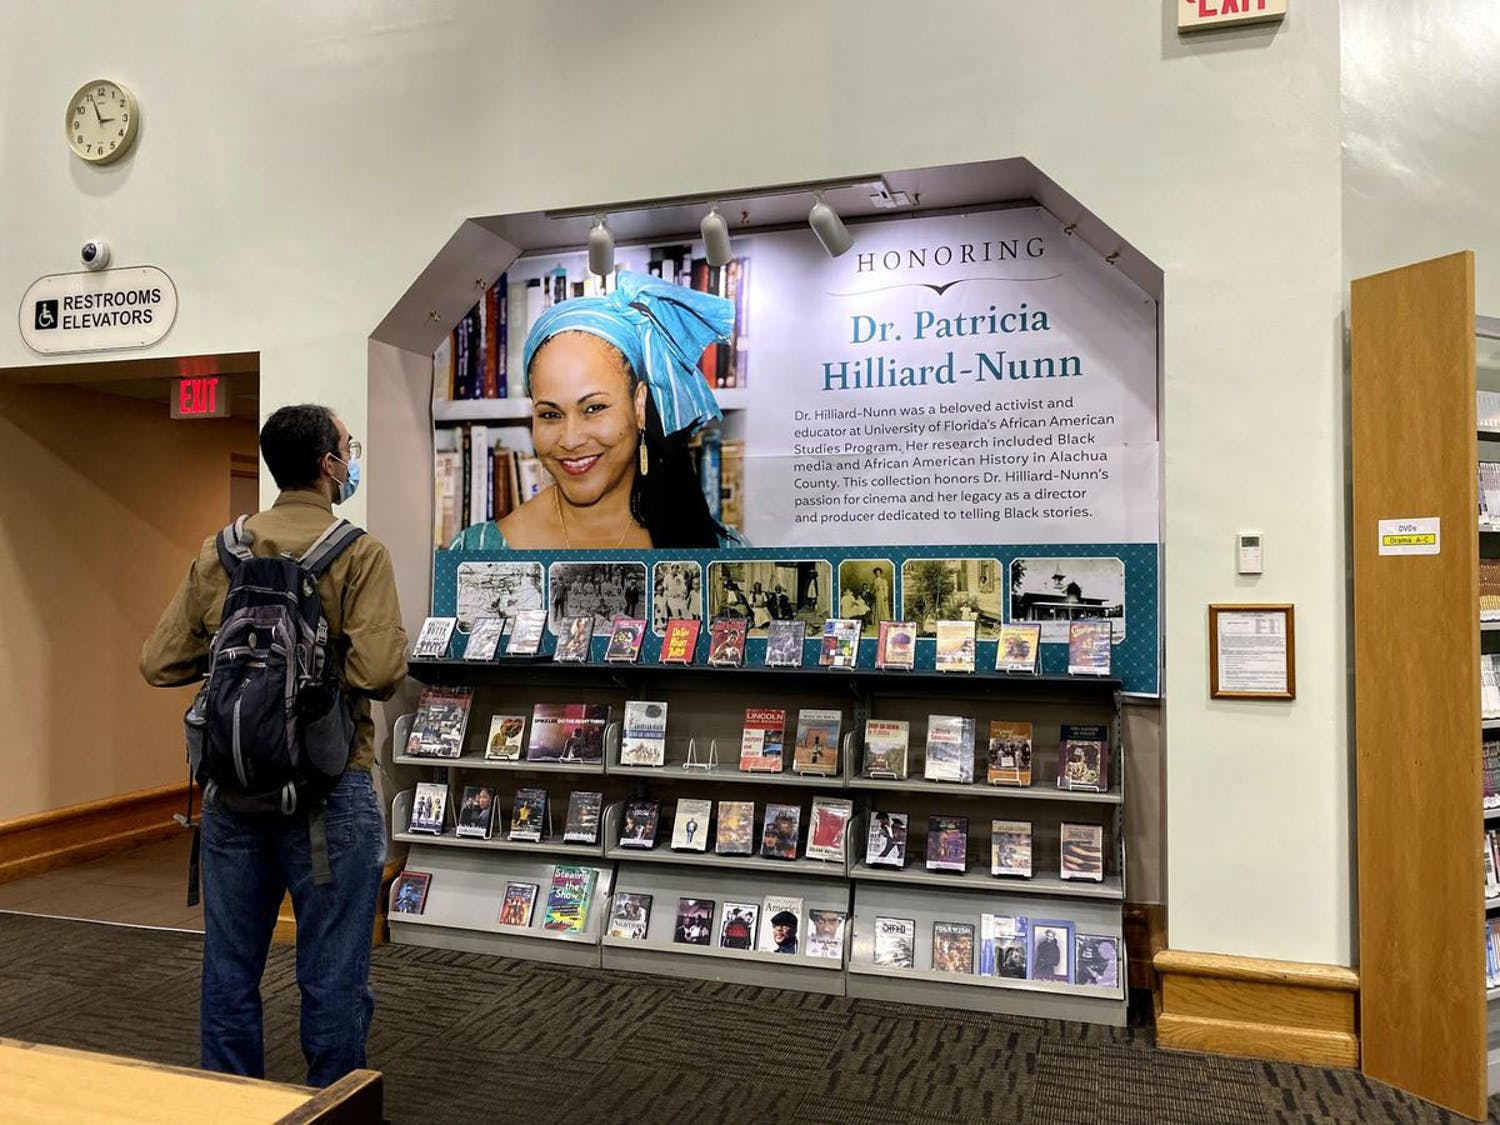 A man observes the collection of movies and books on the display honoring the late Patricia Hilliard-Nunn at the Headquarters Library. Hilliard-Nunn was an activist and adjunct associate professor at UF in the African American Studies Program who died on Aug. 5 at 57.